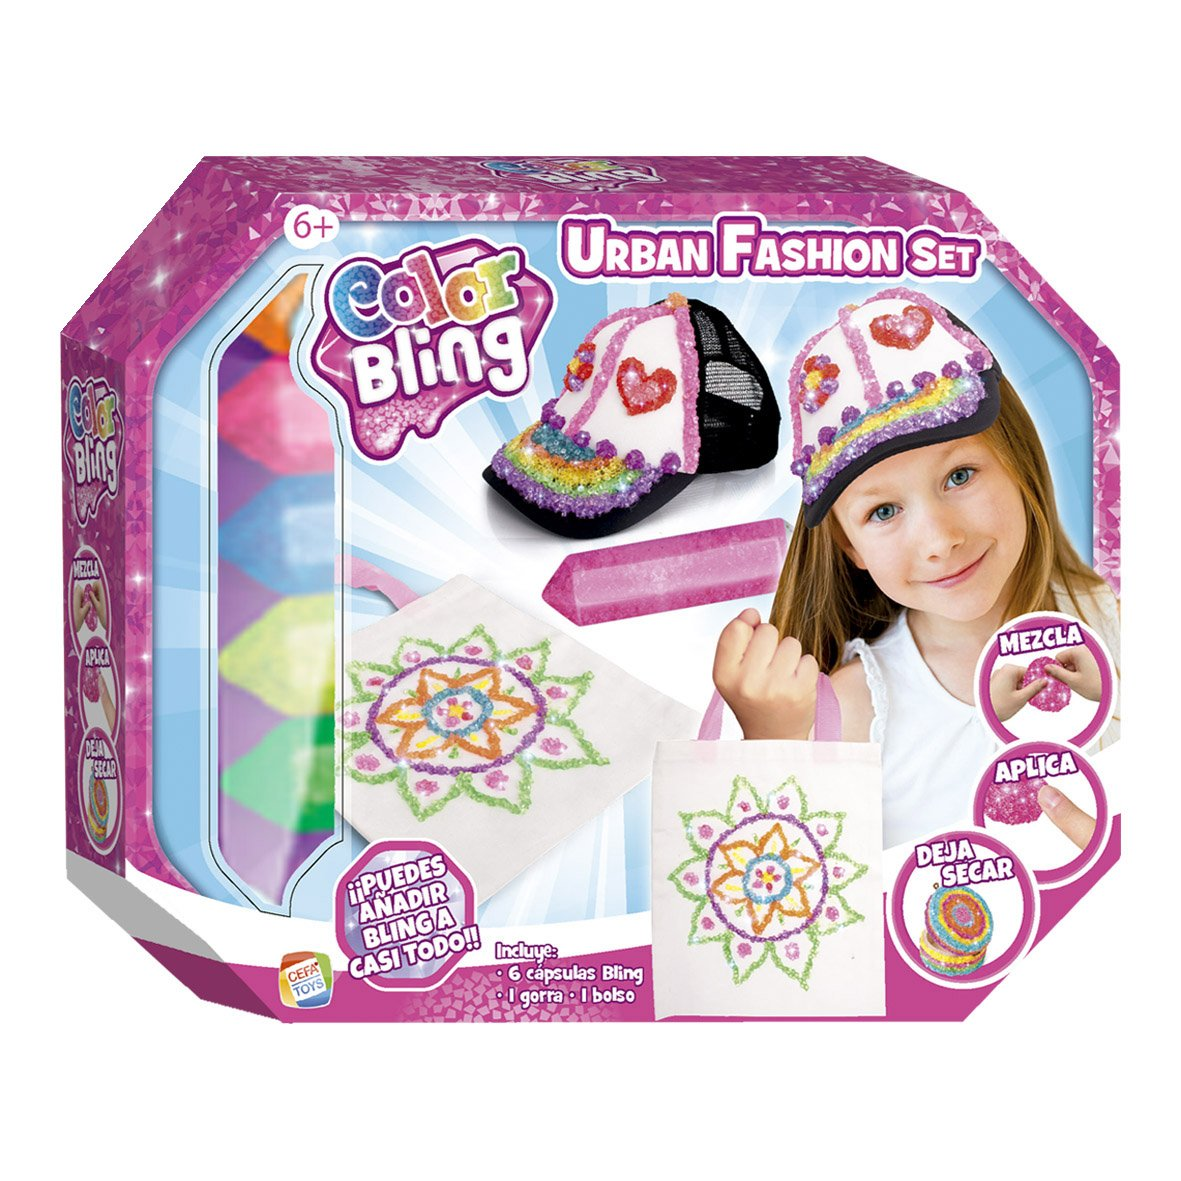 Color Bling Urban fashion set CEFA Toys